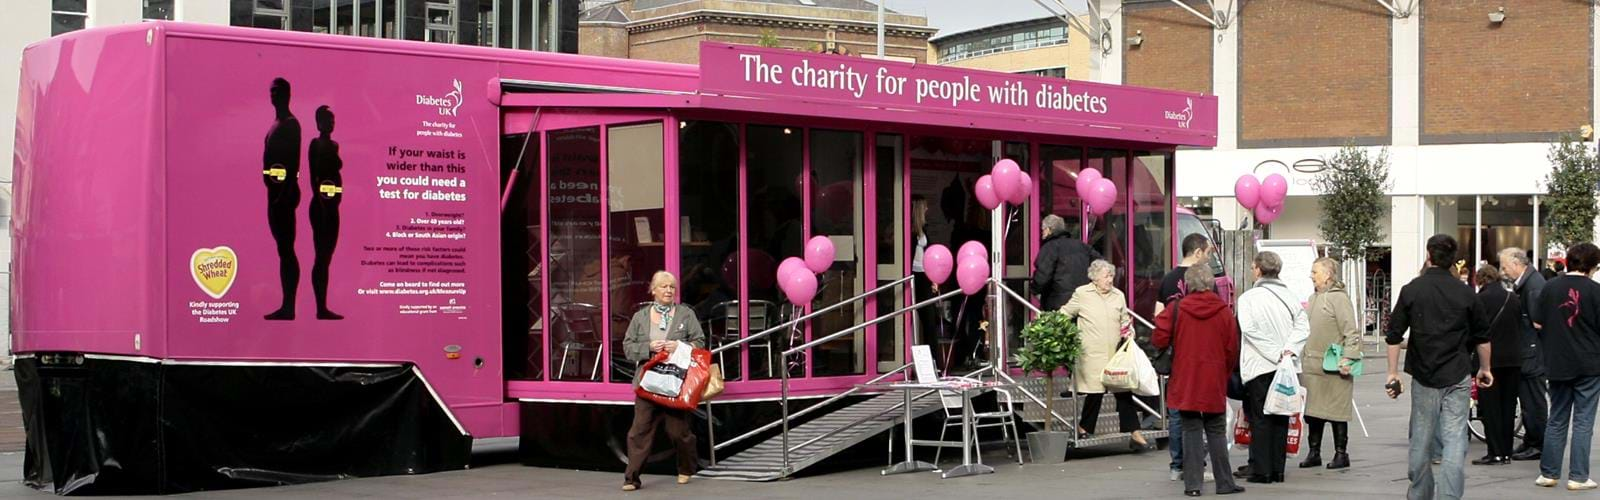 Mobile Health Awareness Unit Diabetes UK (4)